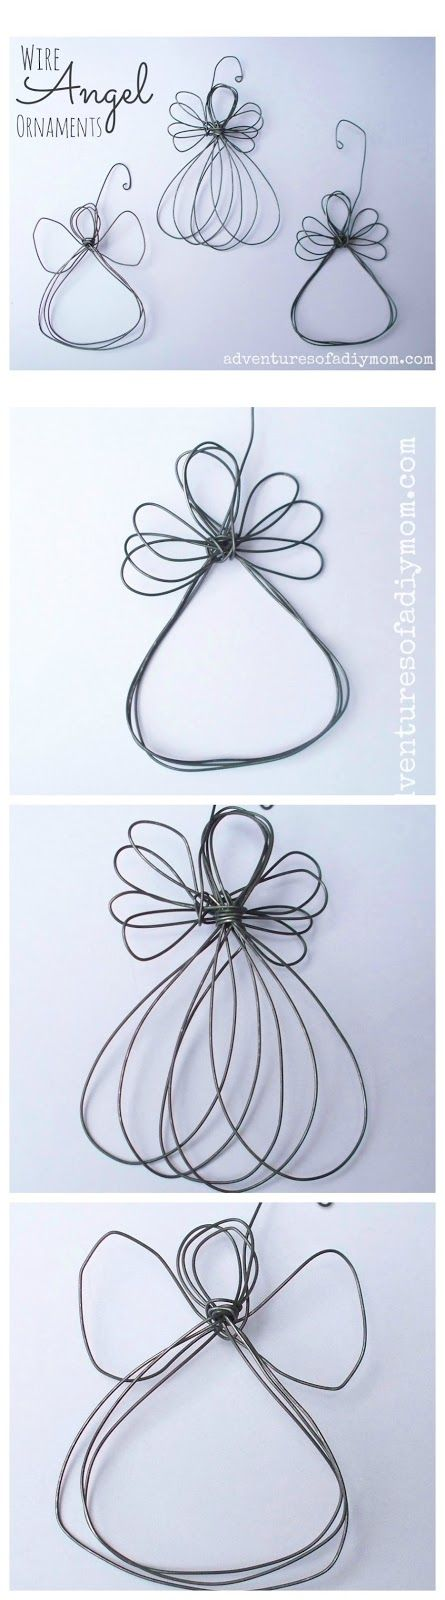 How to Make a Wire Angel Ornament - easy tutorial shows how to make this cute ornament - via Adventures of a DIY Mom